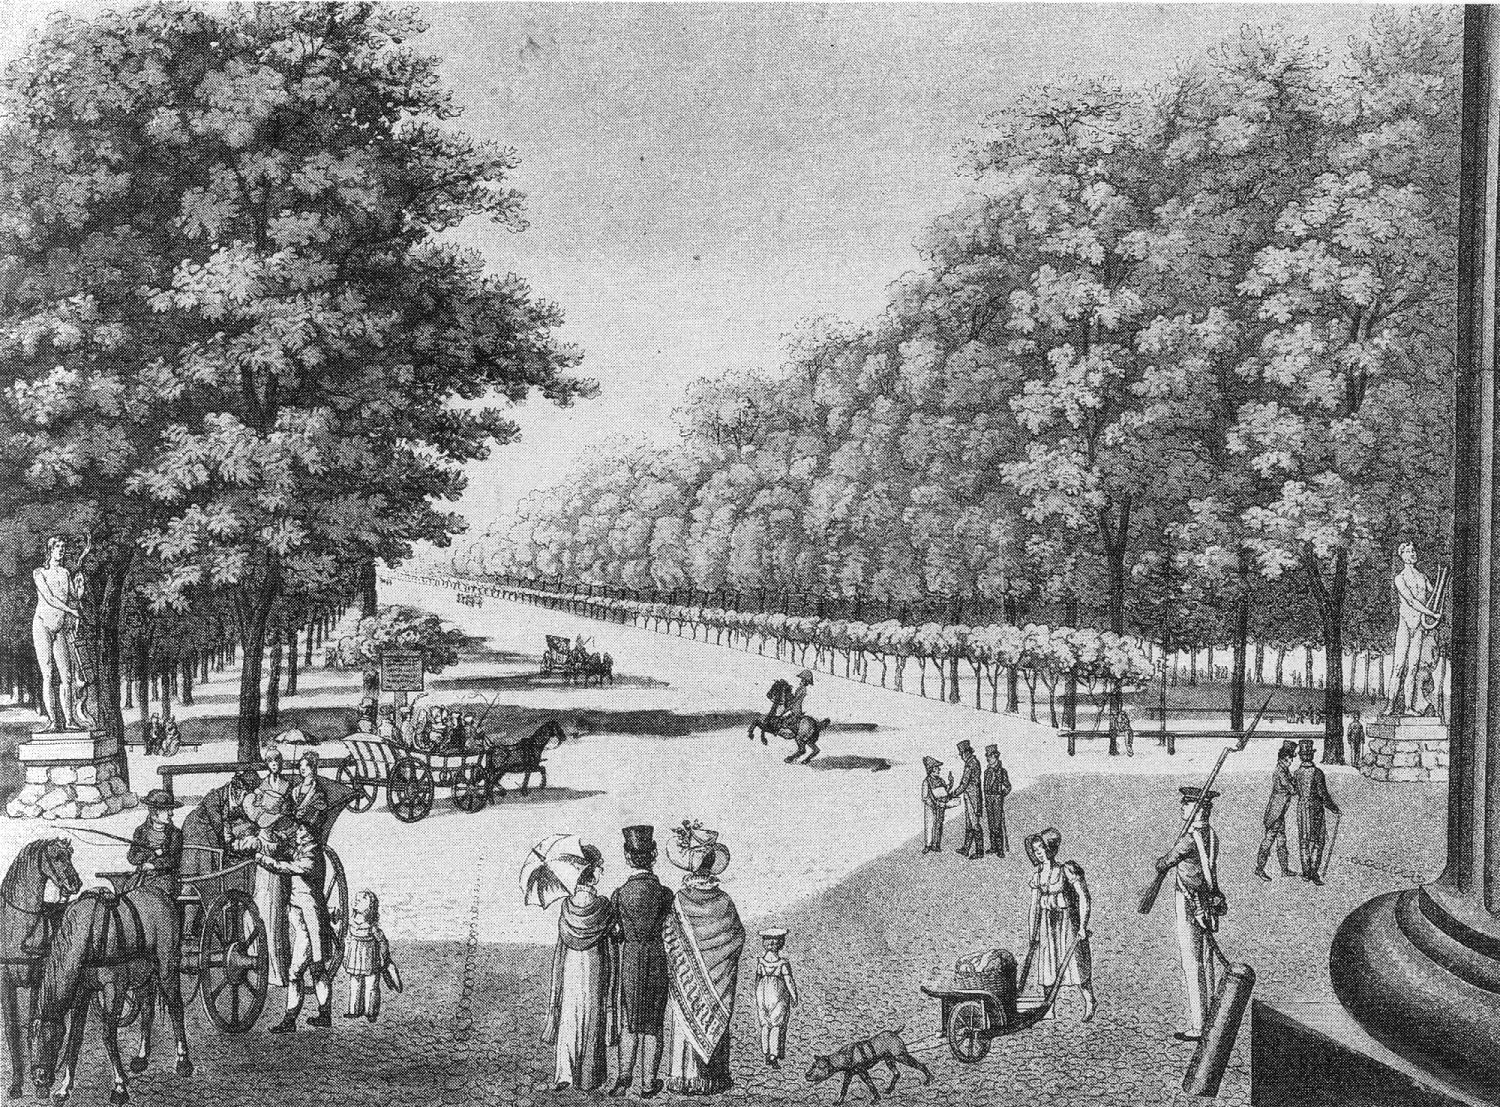 filevorplatz am brandenburger tor 1818 calaujpg